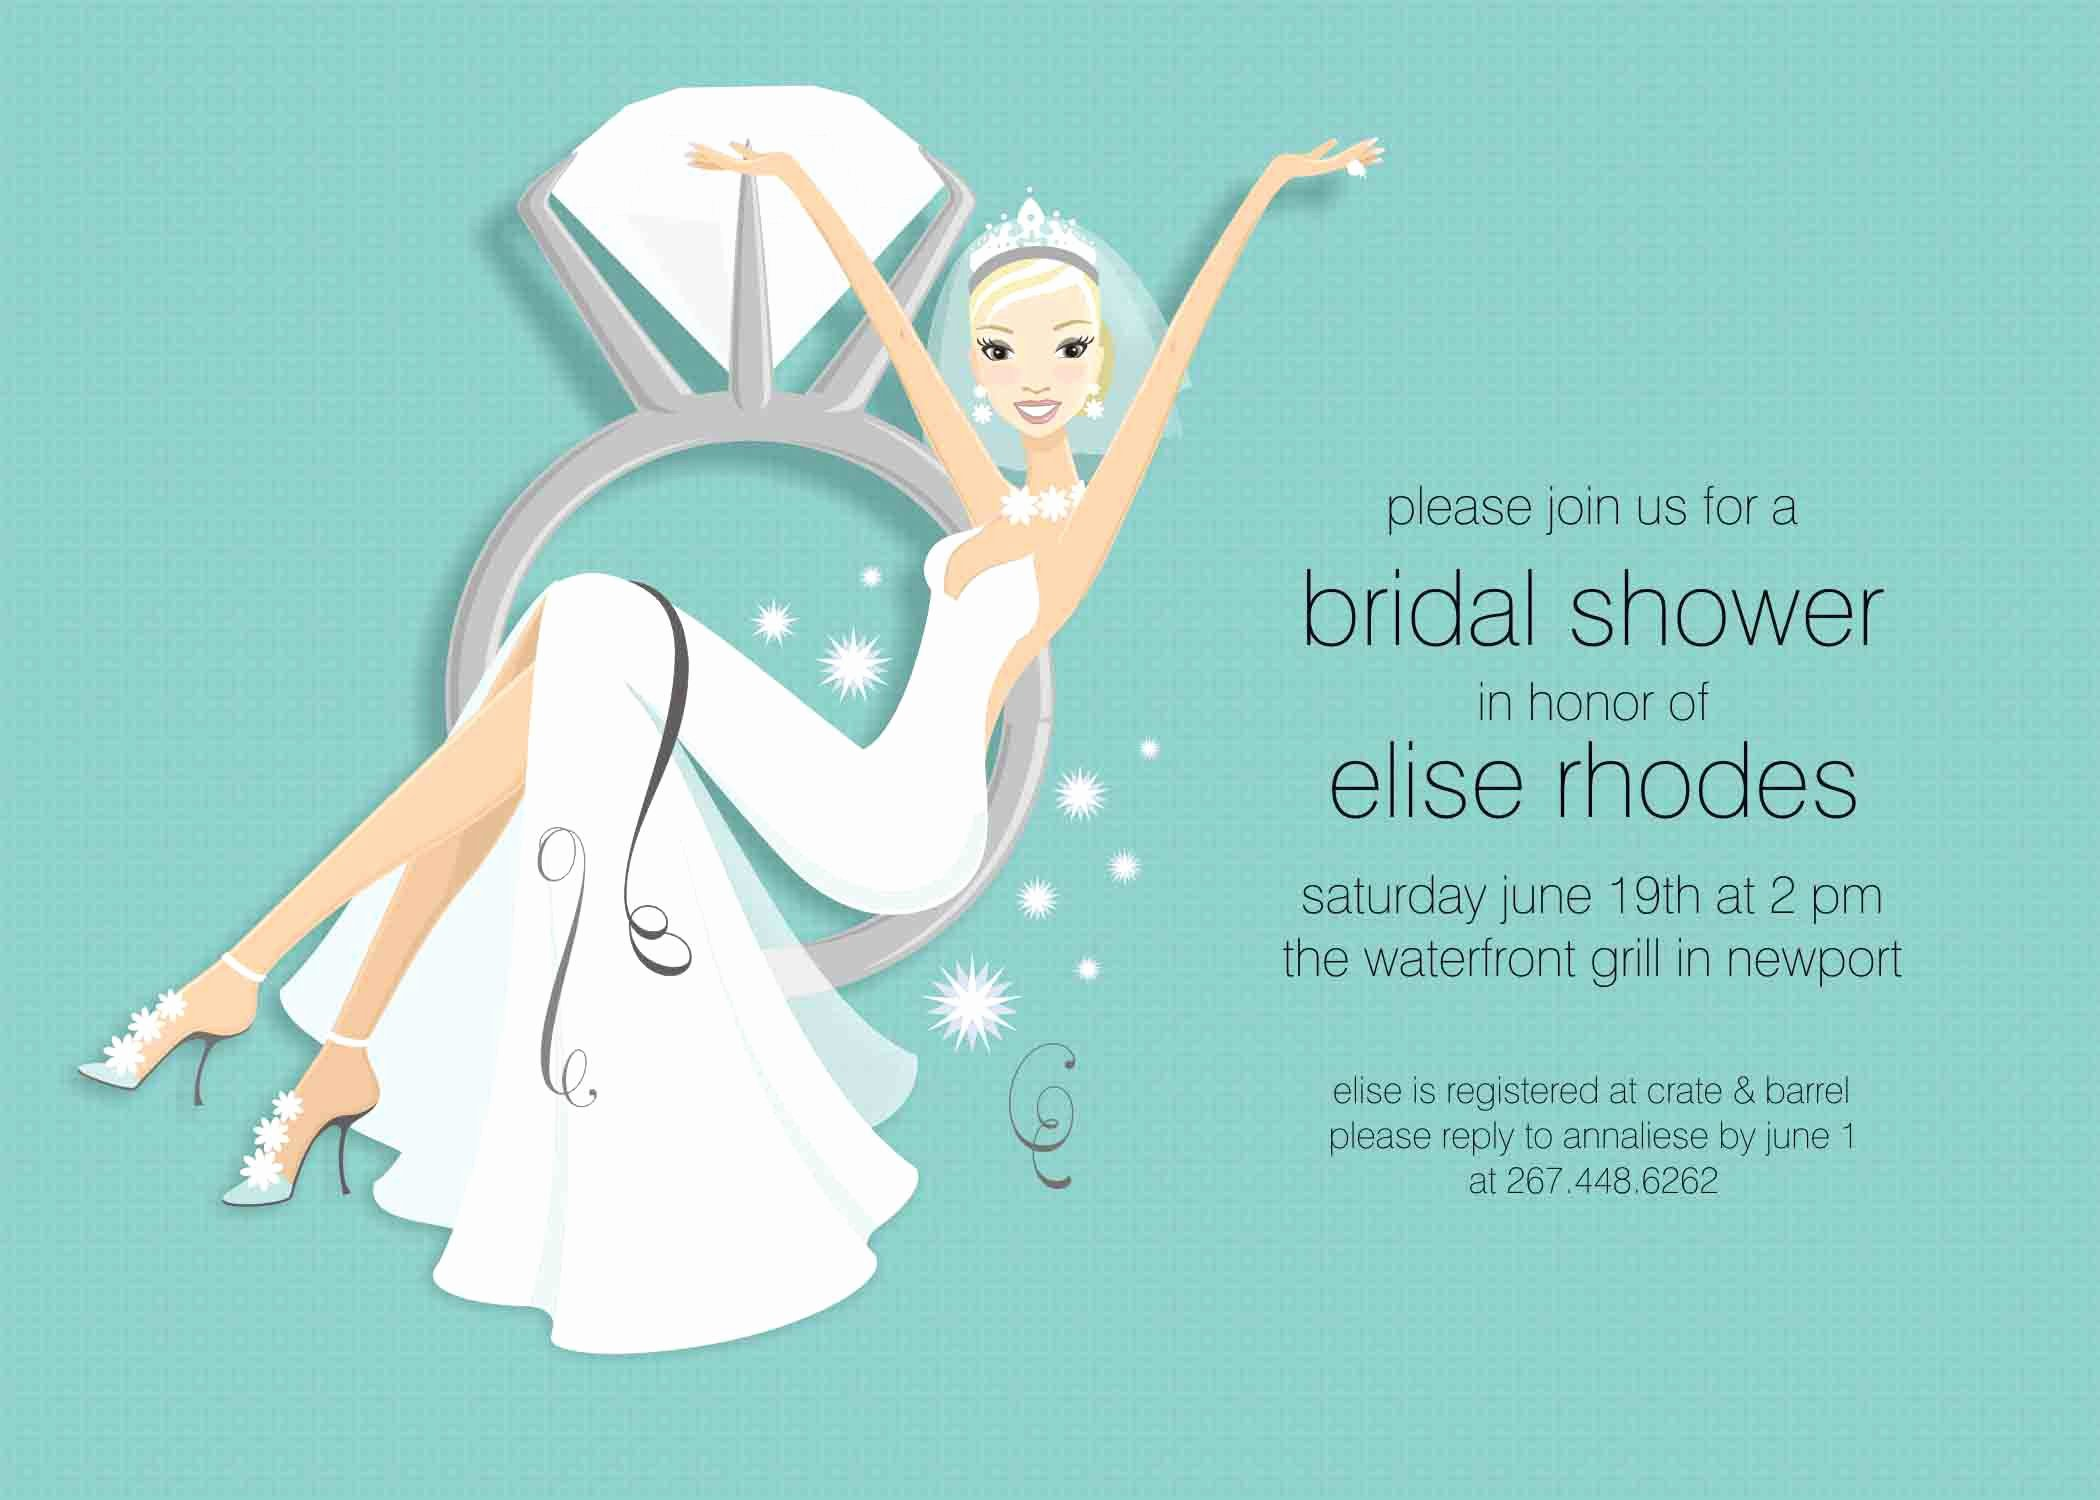 Bridal Shower Invitation Template Awesome Baptism Invitation Christening Invitation Card Maker